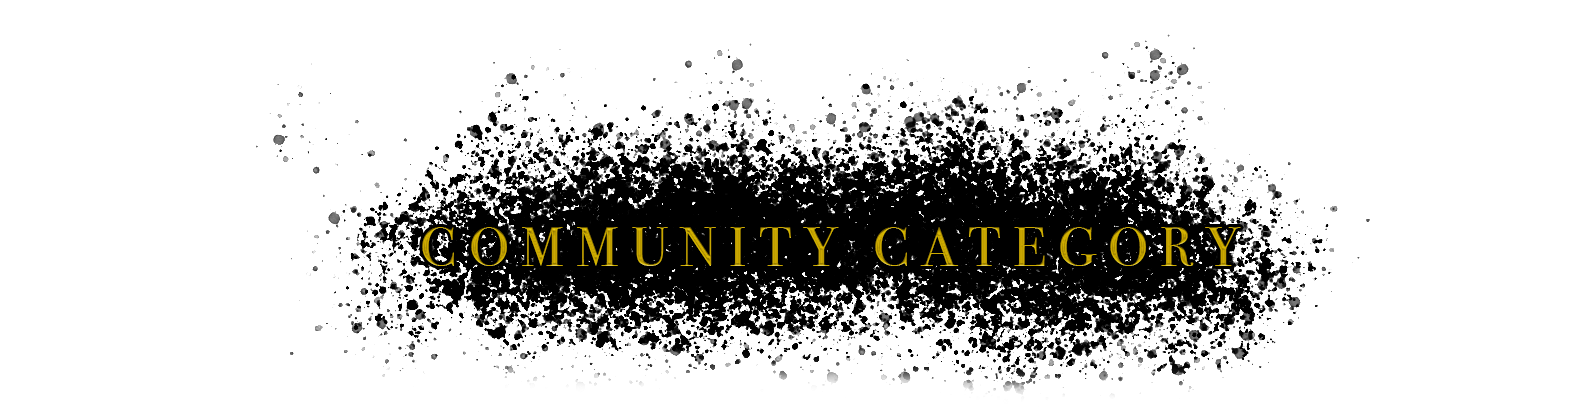 Community_Category.png